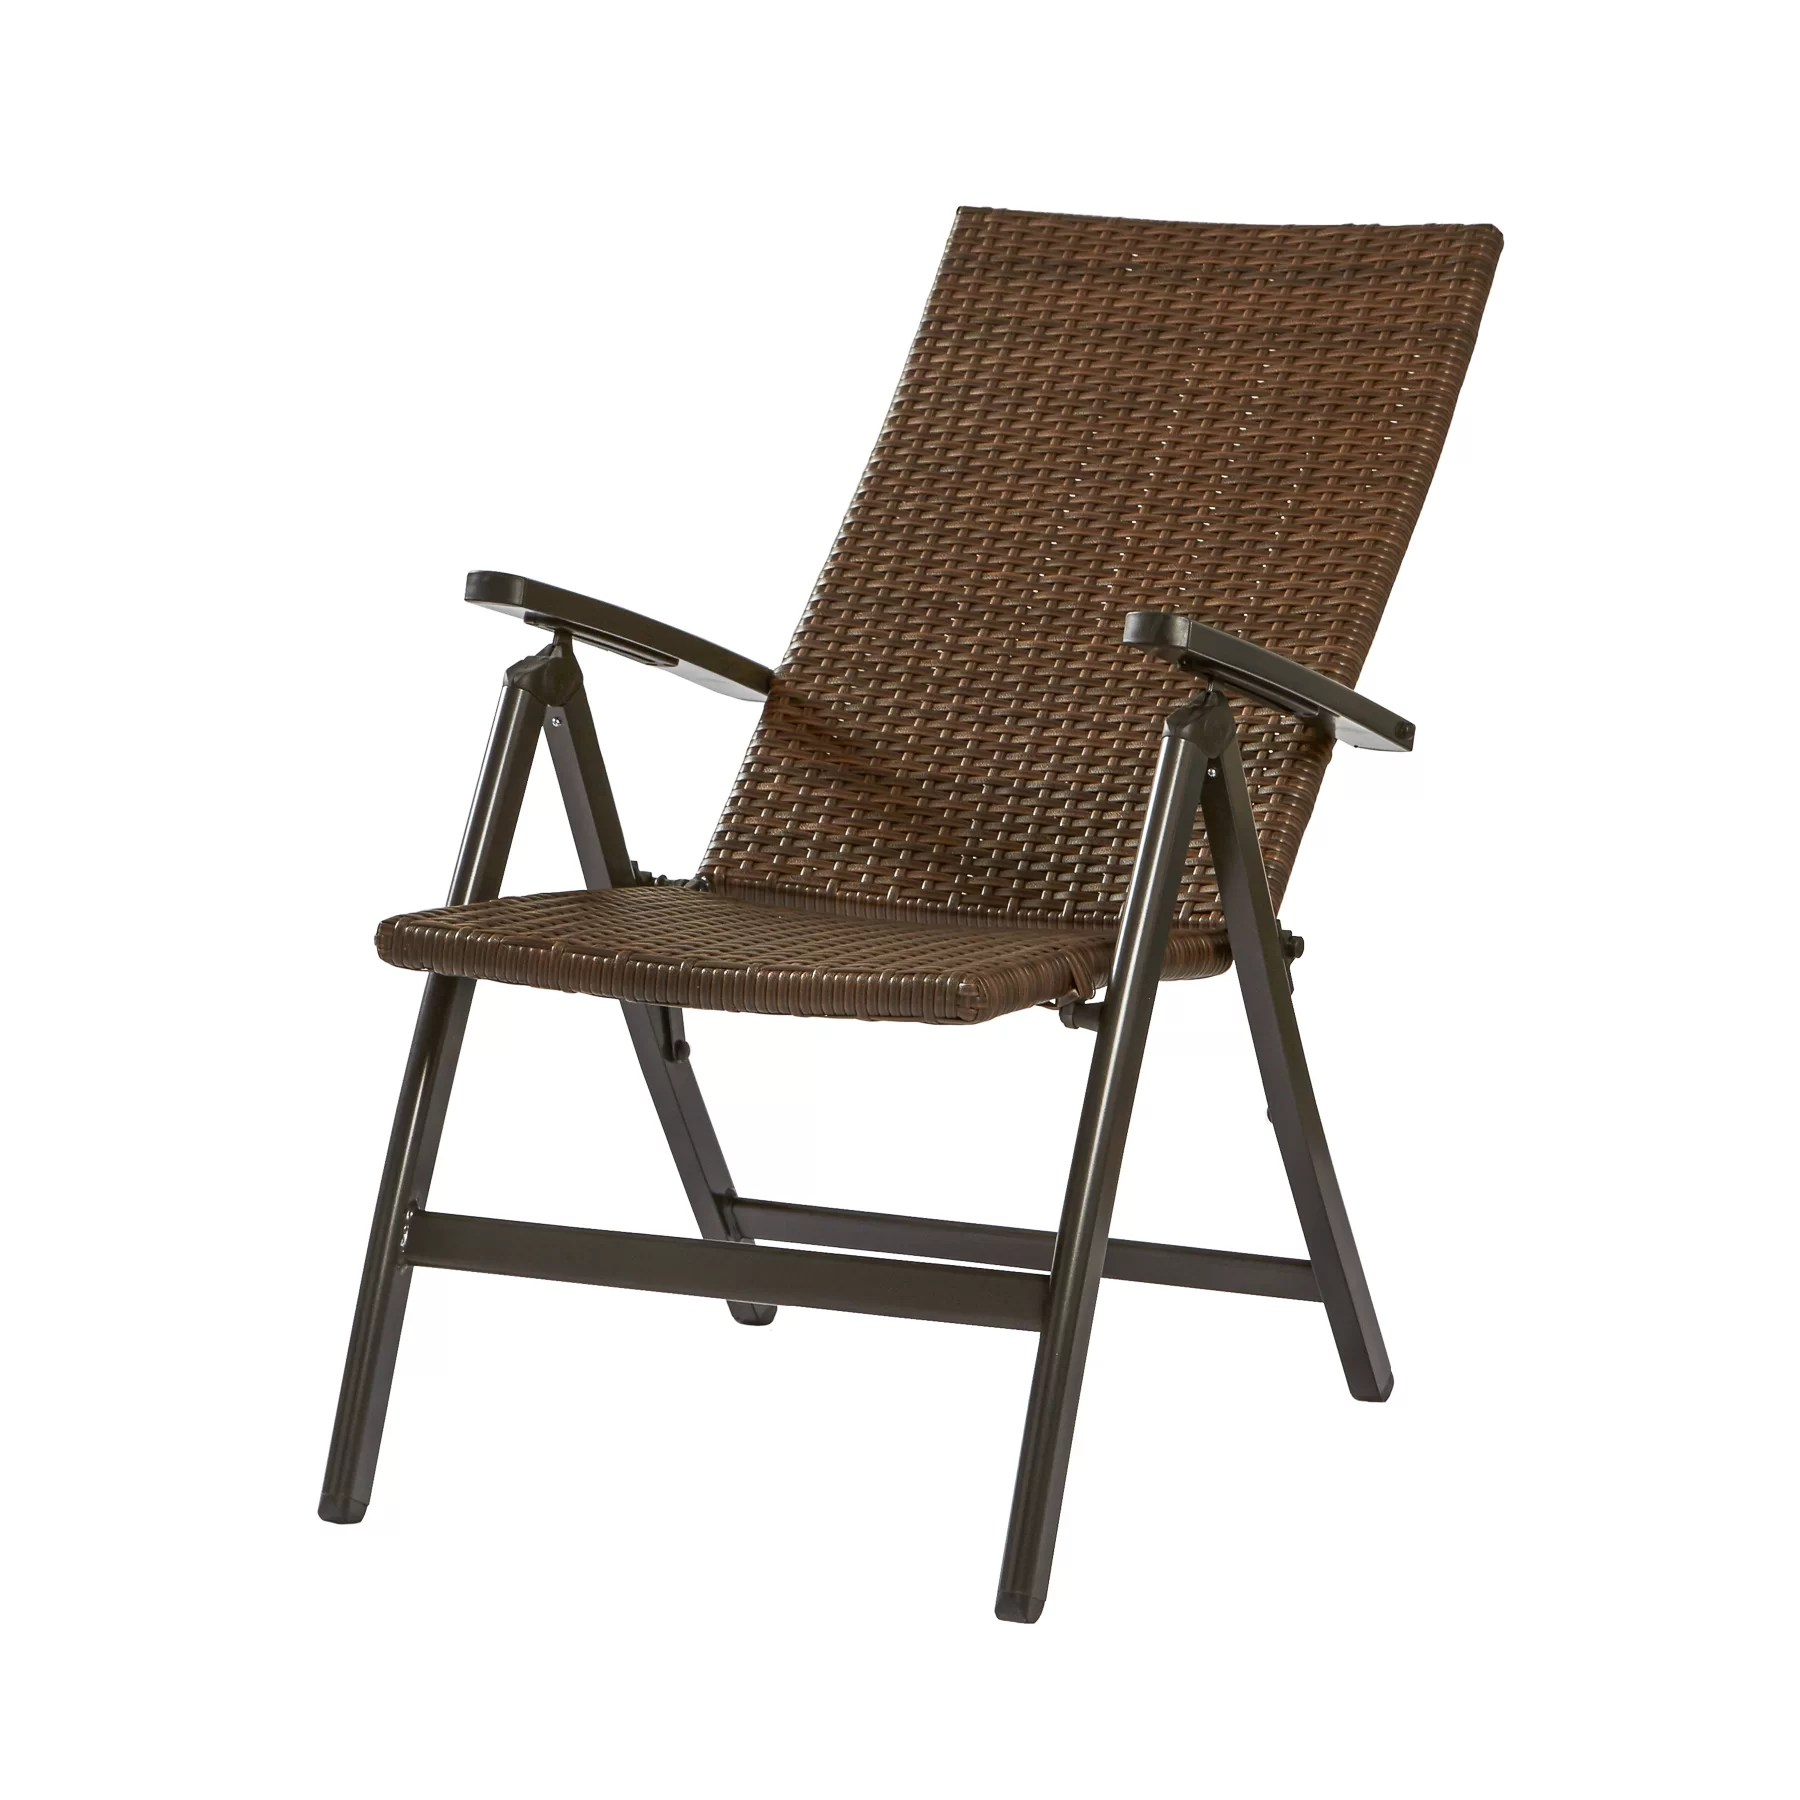 Outdoor Reclining Chair Greendale Home Fashions Wicker Outdoor Reclining Zero